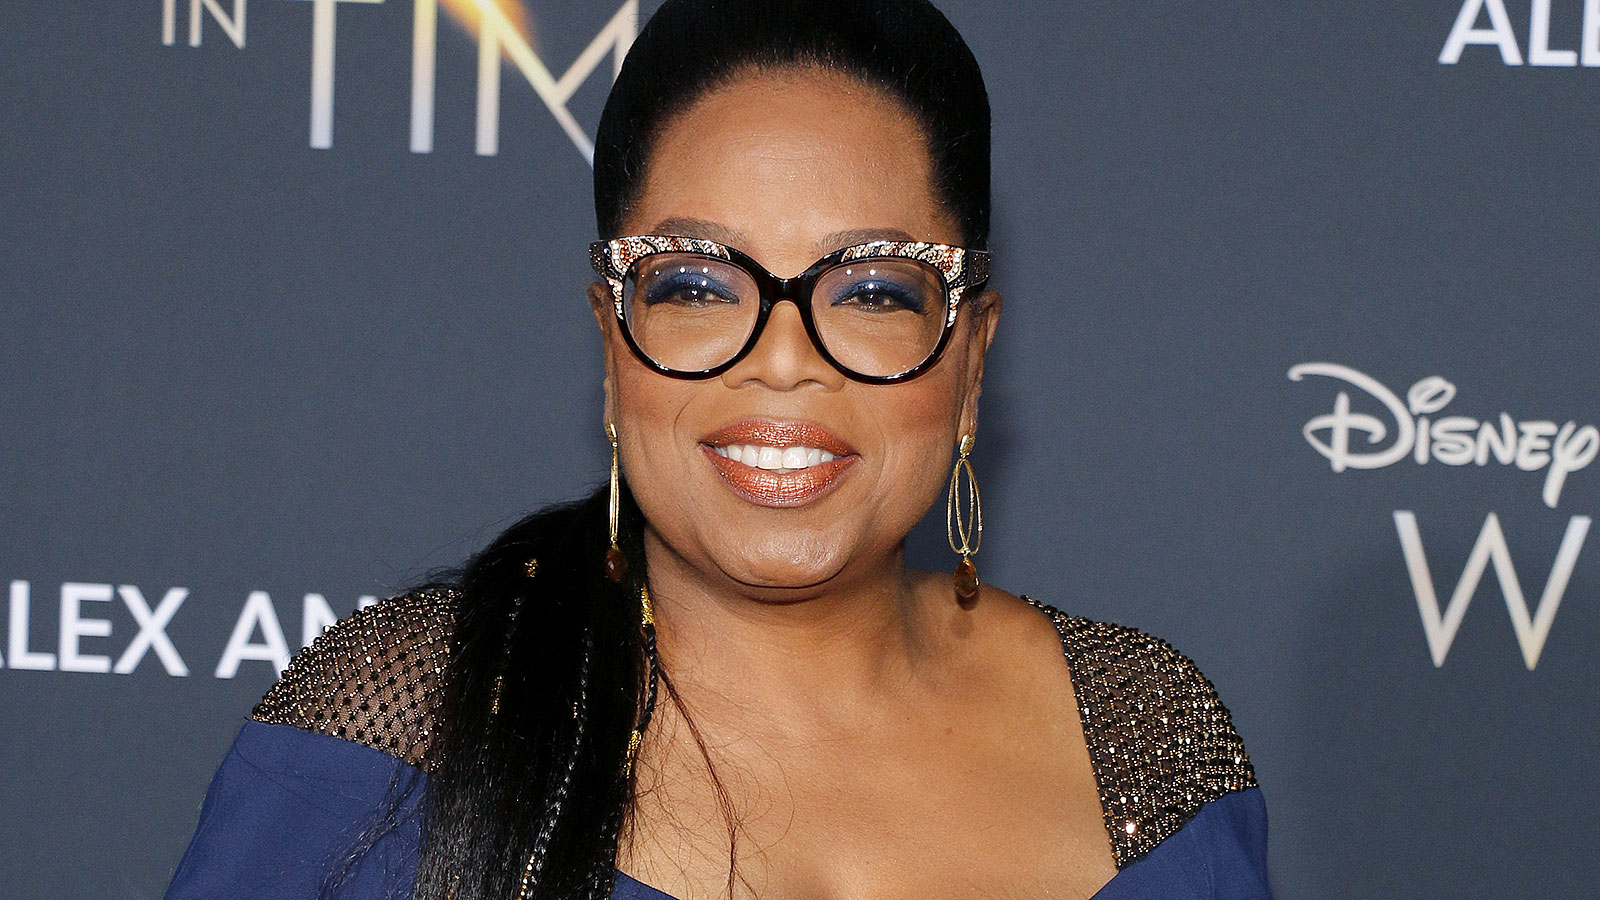 Oprah Winfrey's '60 Minutes' exit is a lesson for everyone